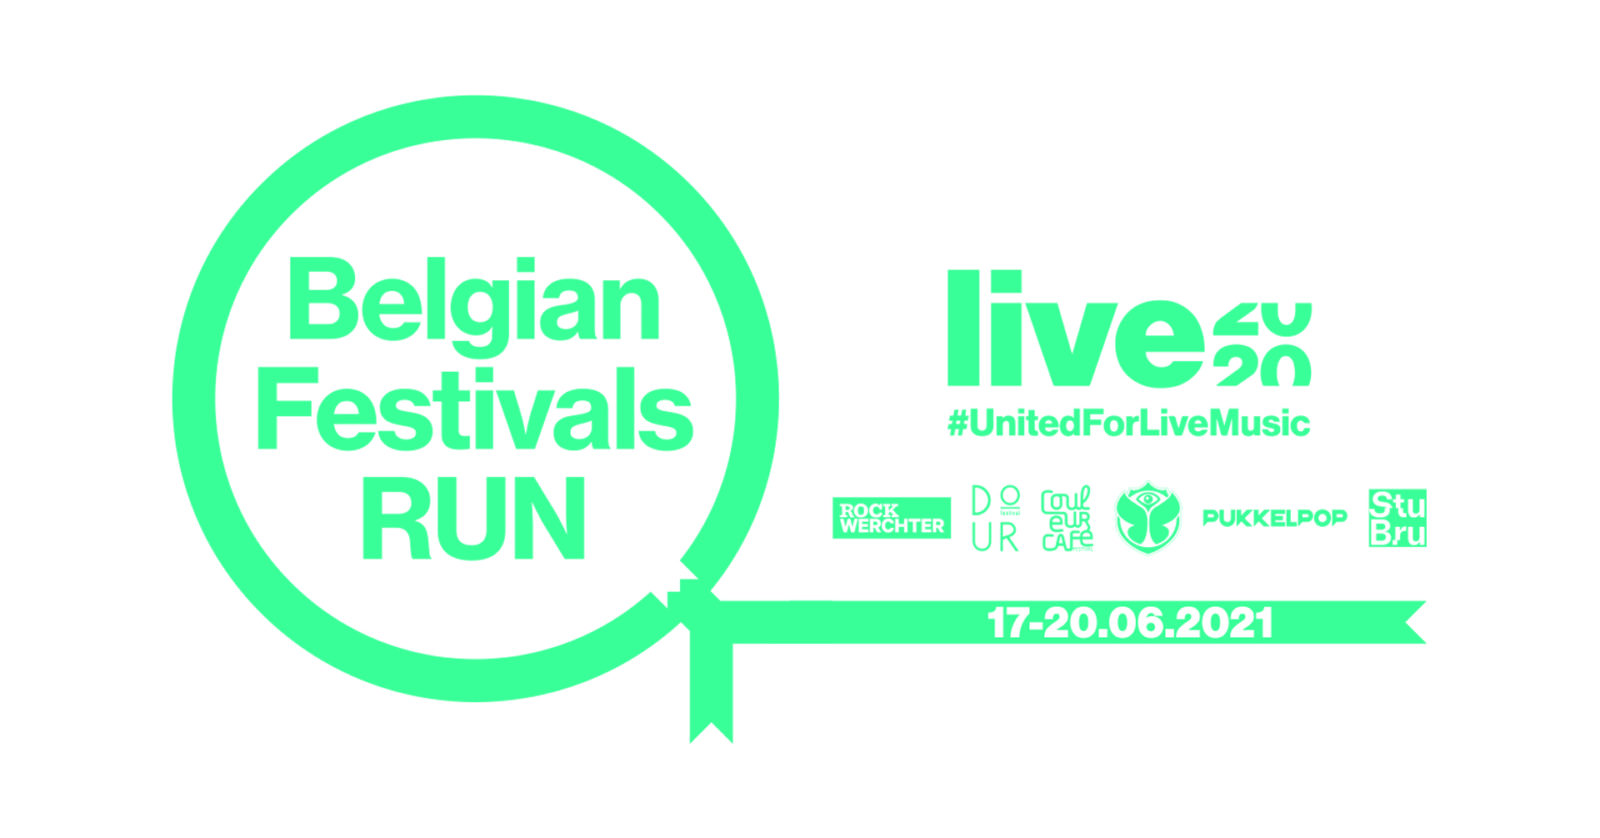 Virtually run through the history of 5 Belgian top festivals in benefit of support fund LIVE2020!